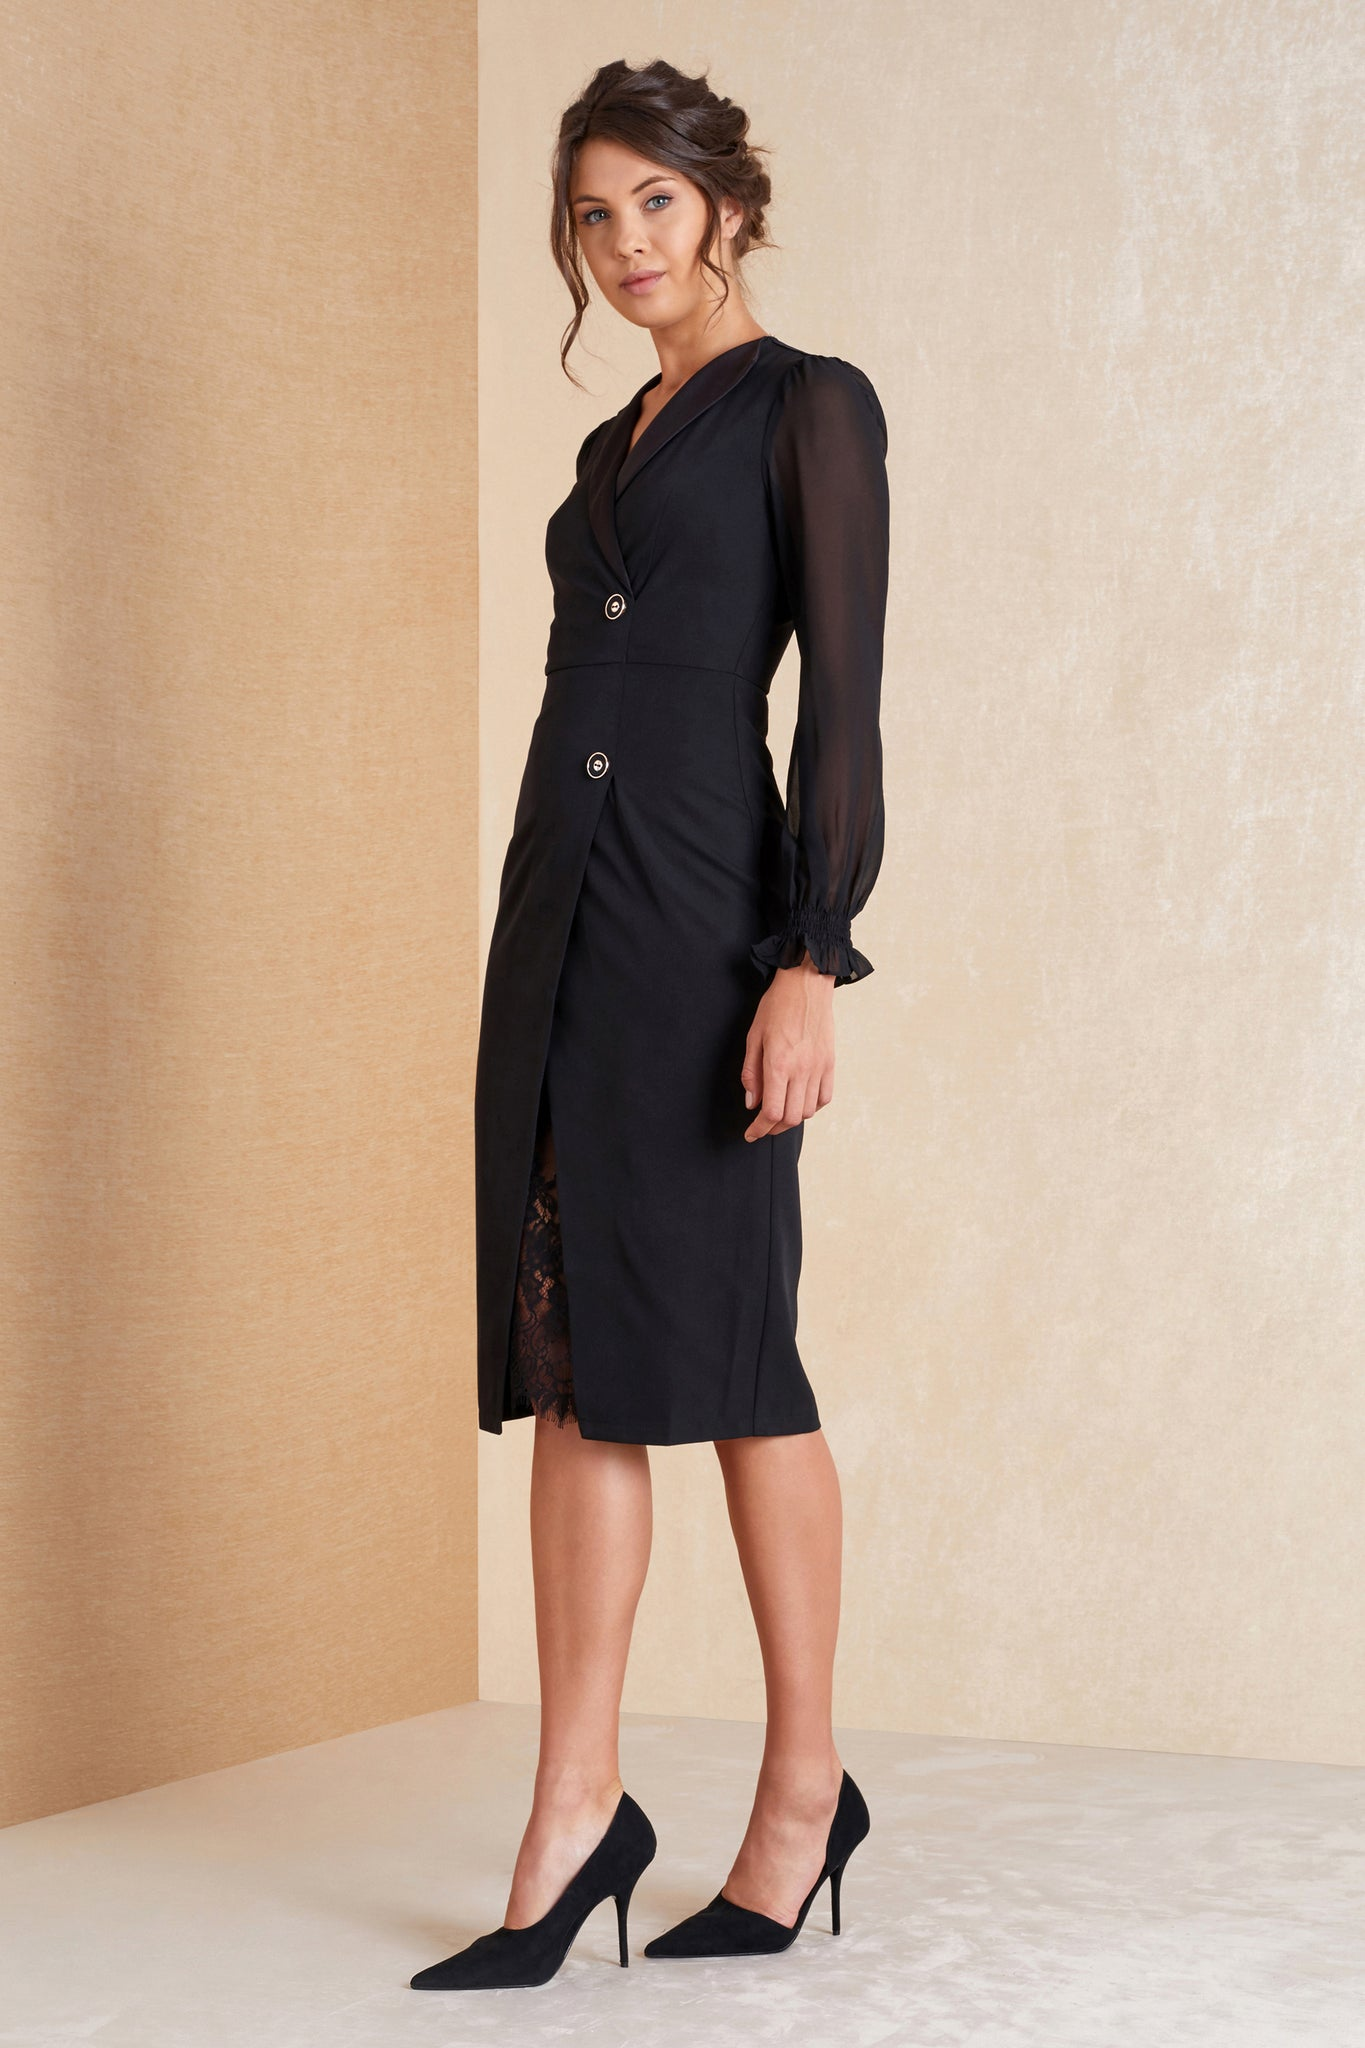 Black Long Sleeve Fitted Dress - April & Alex